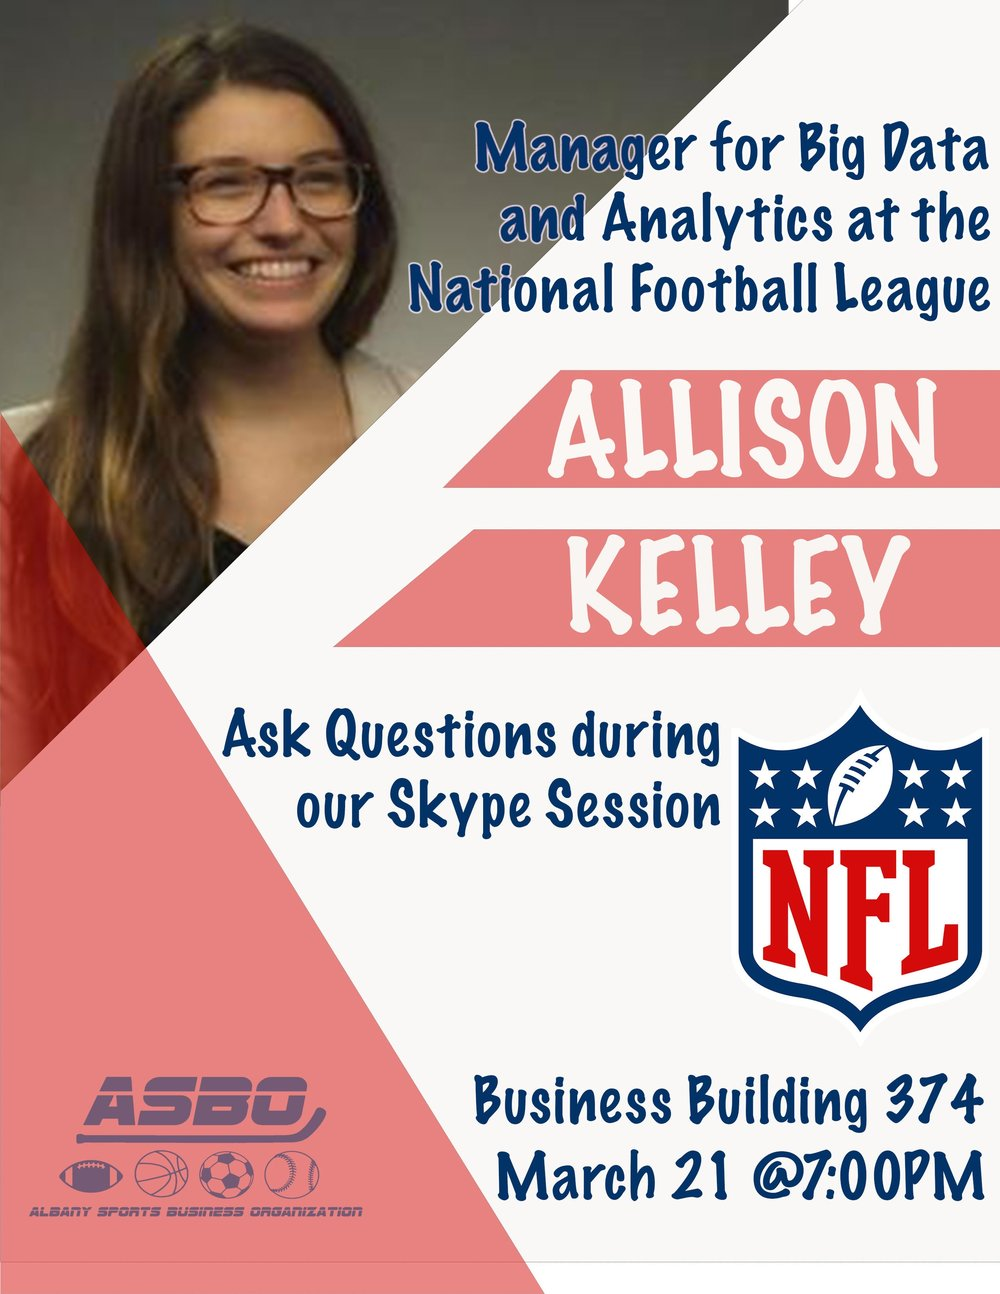 Allison Kelley from the NFL